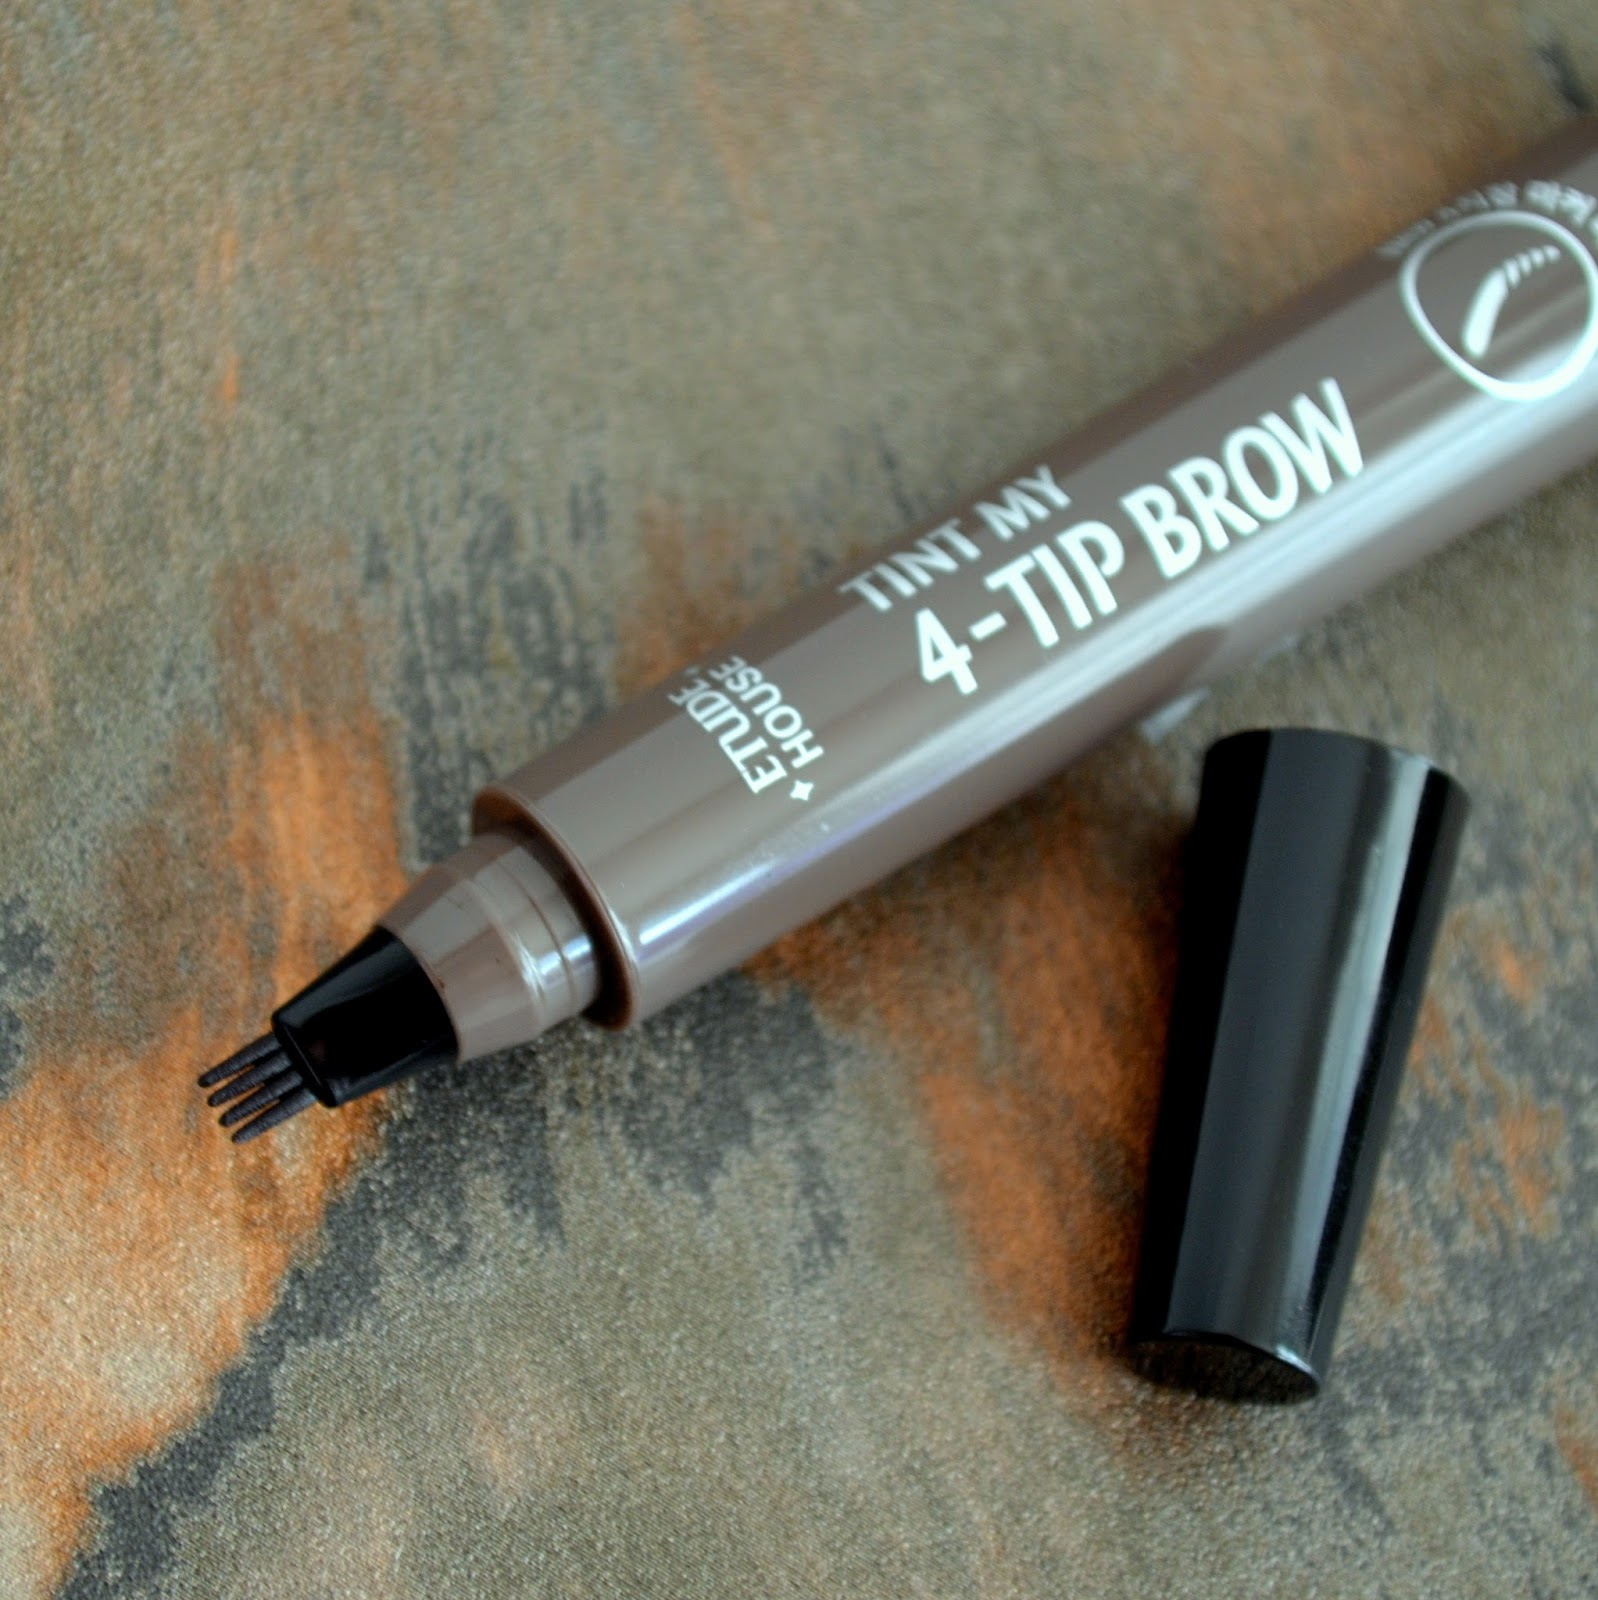 Etude House Eyebrow Tint My 4 Tip Brow In 04 Review Swatches Pink Drawing New Buy 1 Get Now If Youre Into K Pop Scene You Will Know That Eyebrows Are A Thing Every Idol Has Thick Full Have Quite Uniform